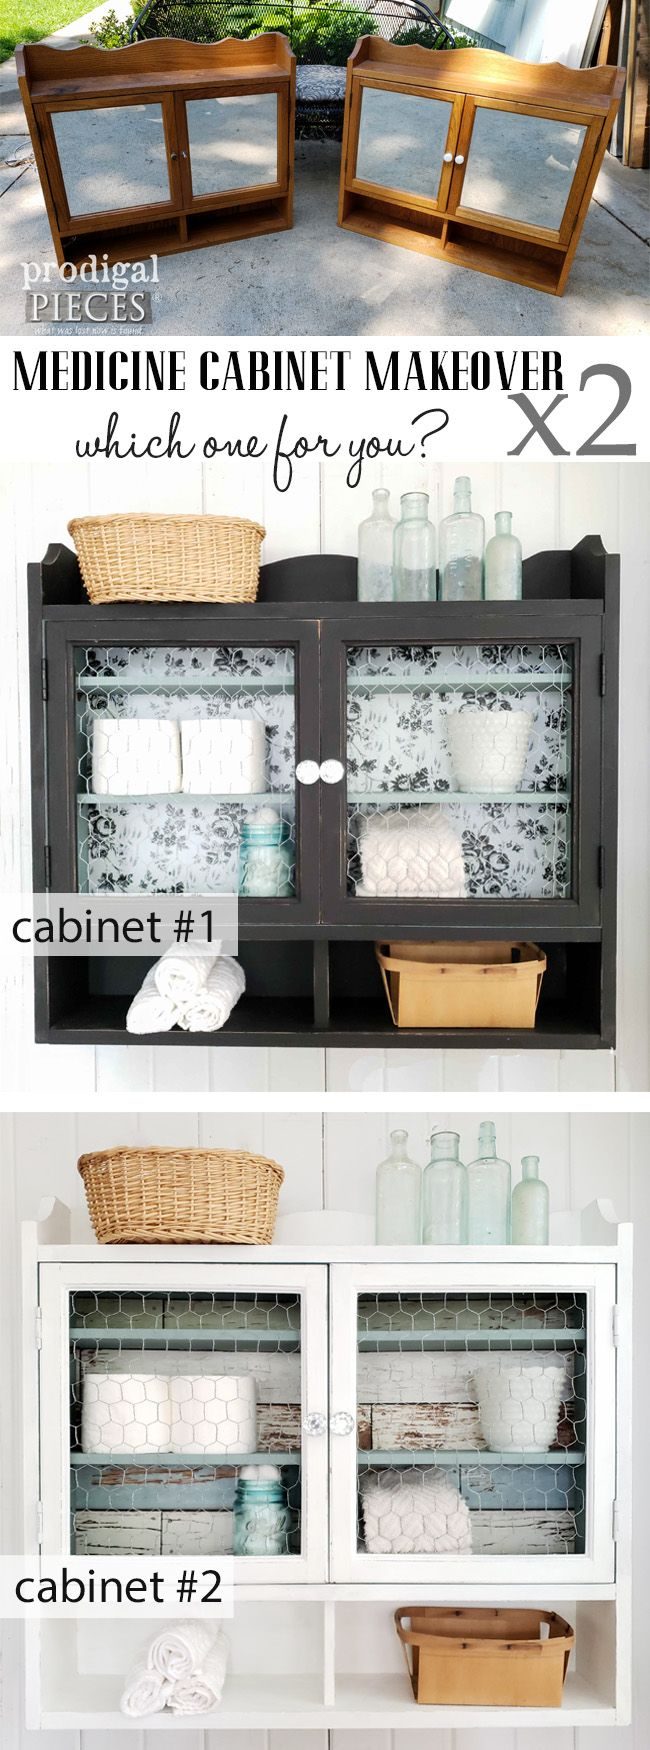 Check out this thrifted medicine cabinet makeover by Larissa of Prodigal Pieces....